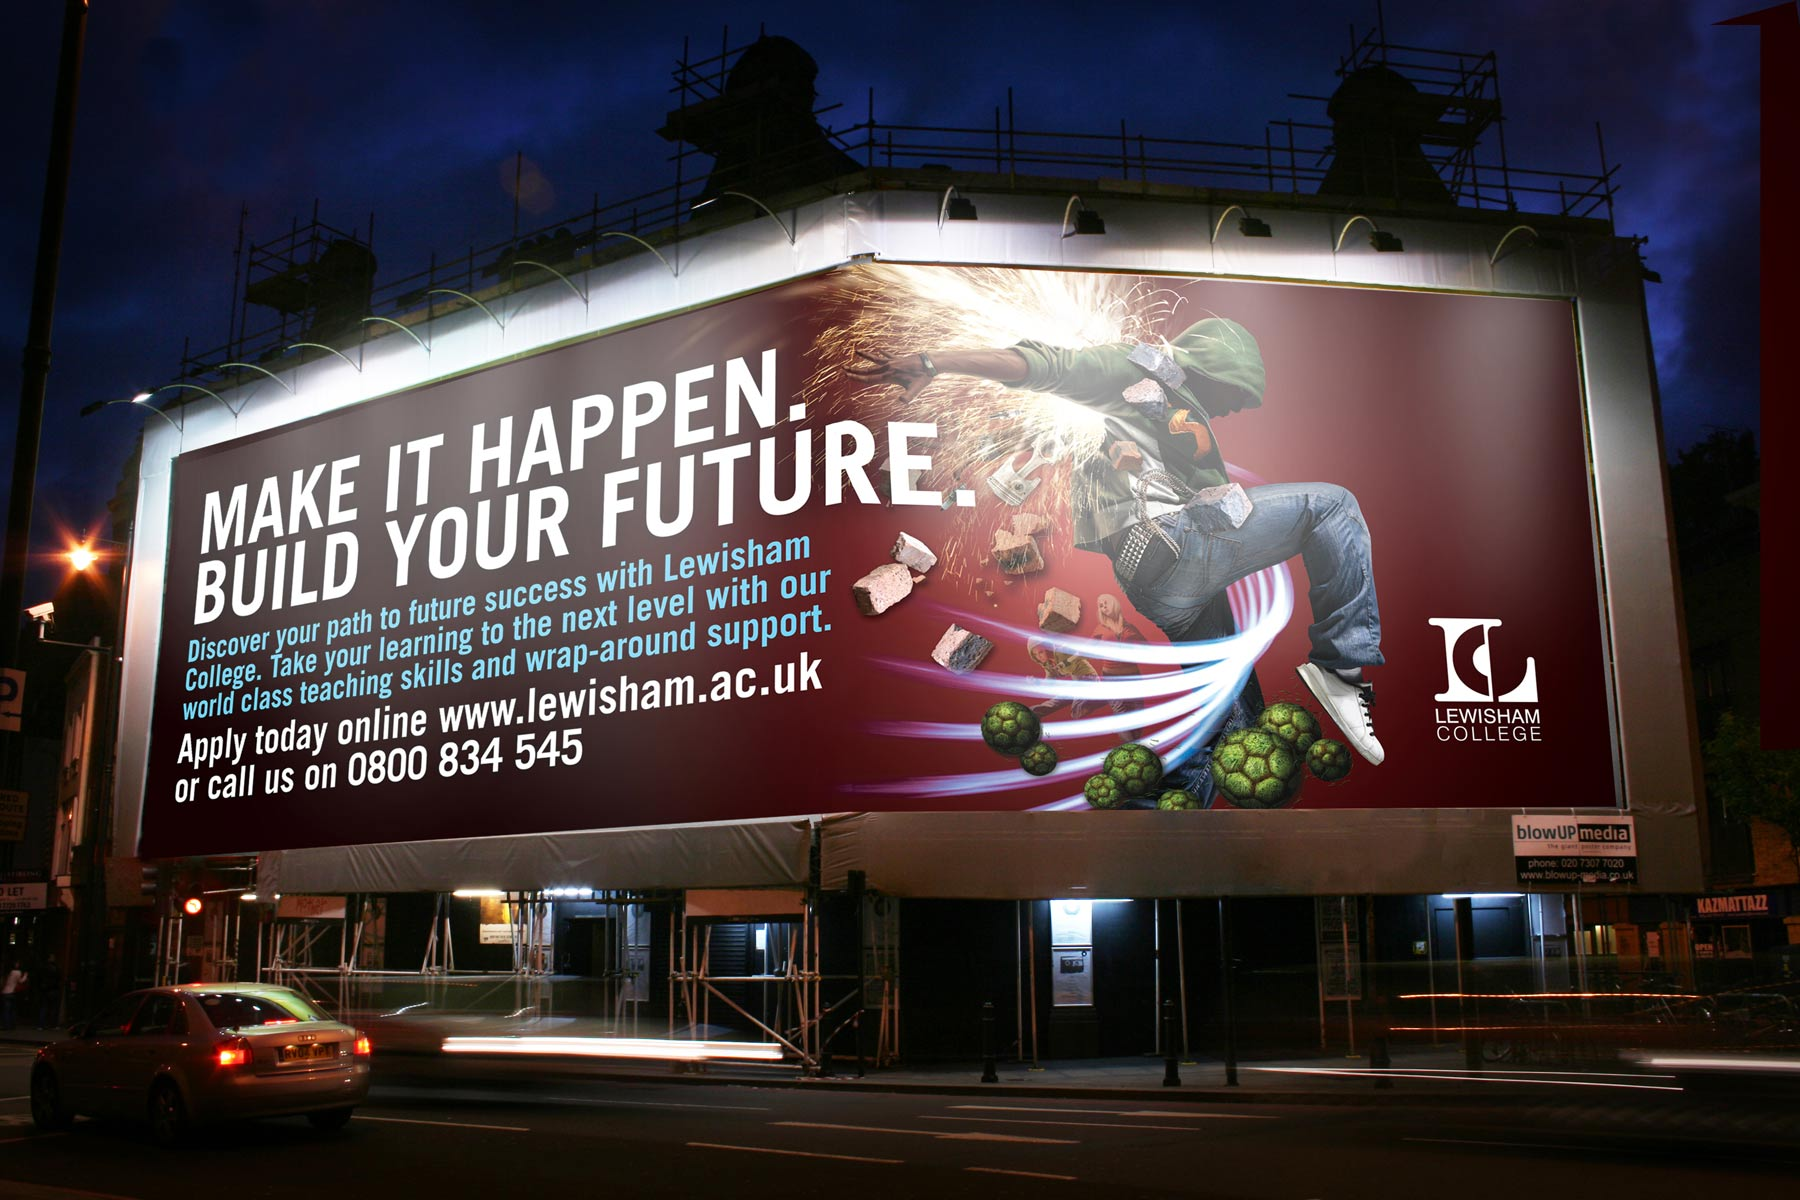 The campaign utilised the powerful imagery to its greatest effect supported with hard hitting copy and a strong call to action.